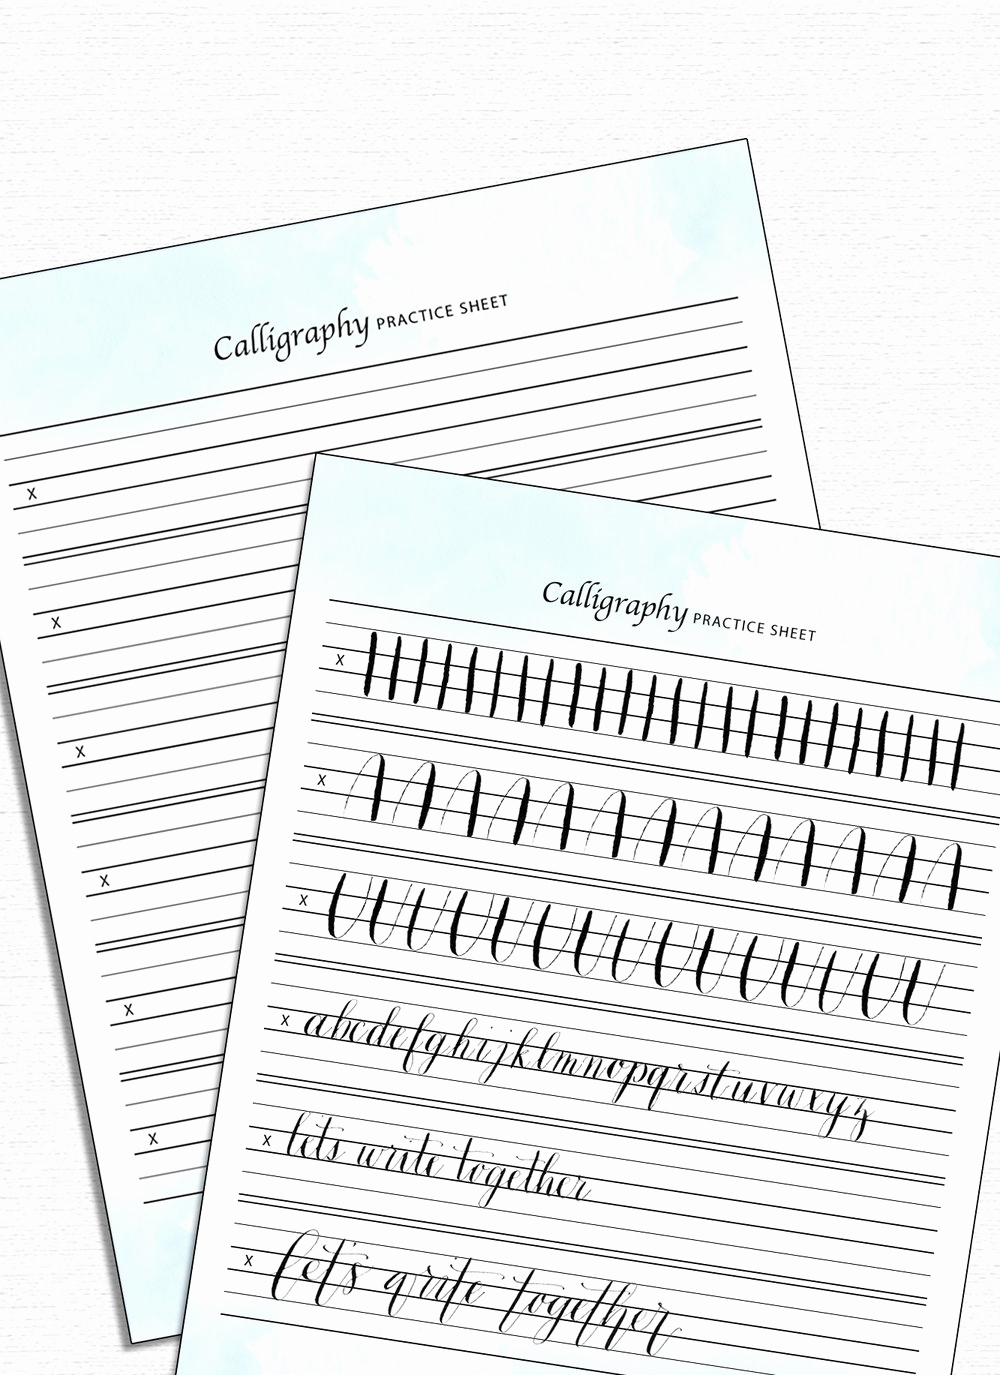 Free Calligraphy Worksheets Printable Awesome Calligraphy Practice Sheet — Drawn to Diy